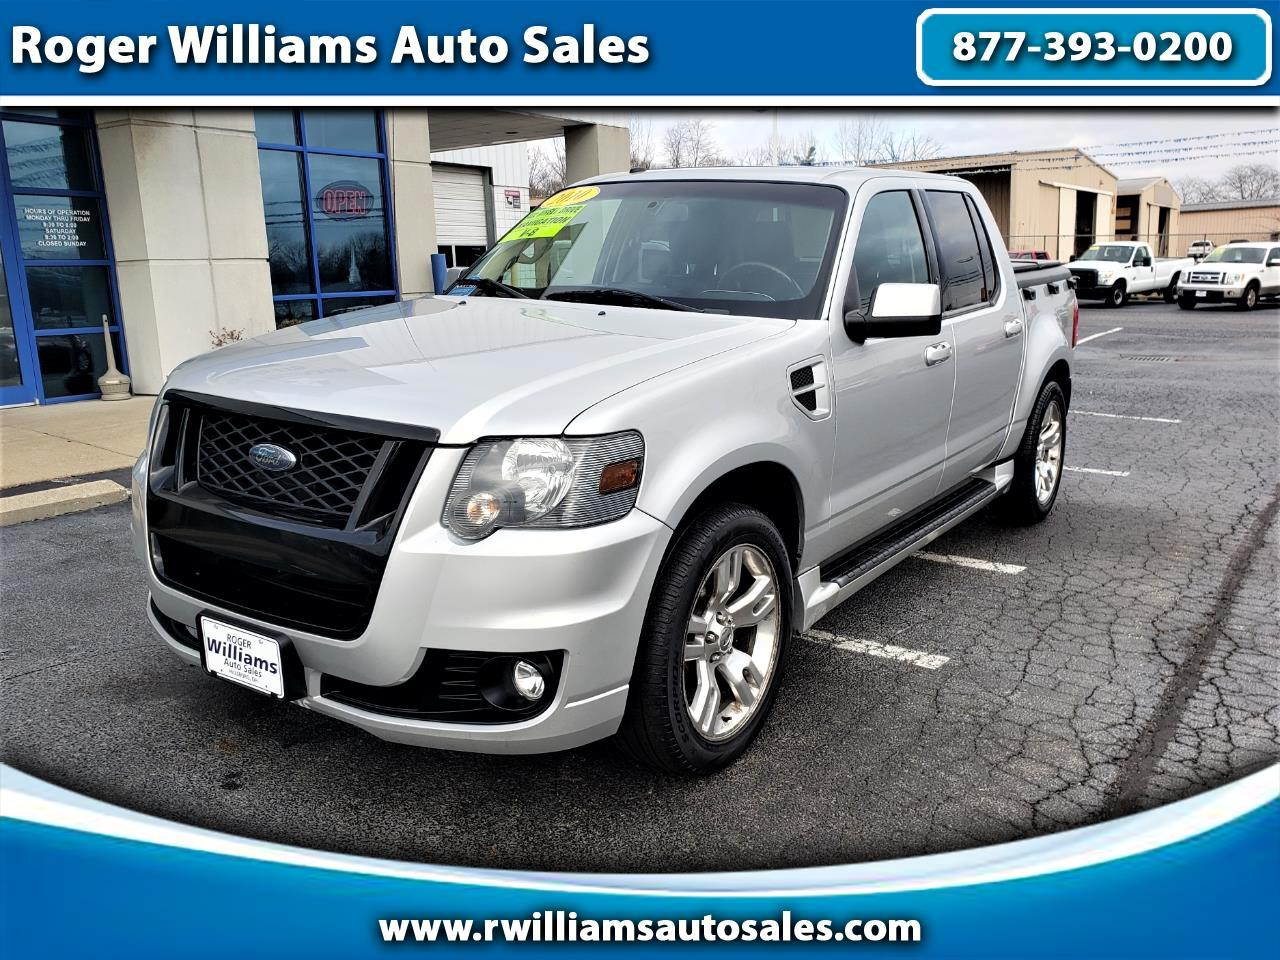 Ford Explorer Sport Trac AWD 4dr V8 Adrenalin 2010